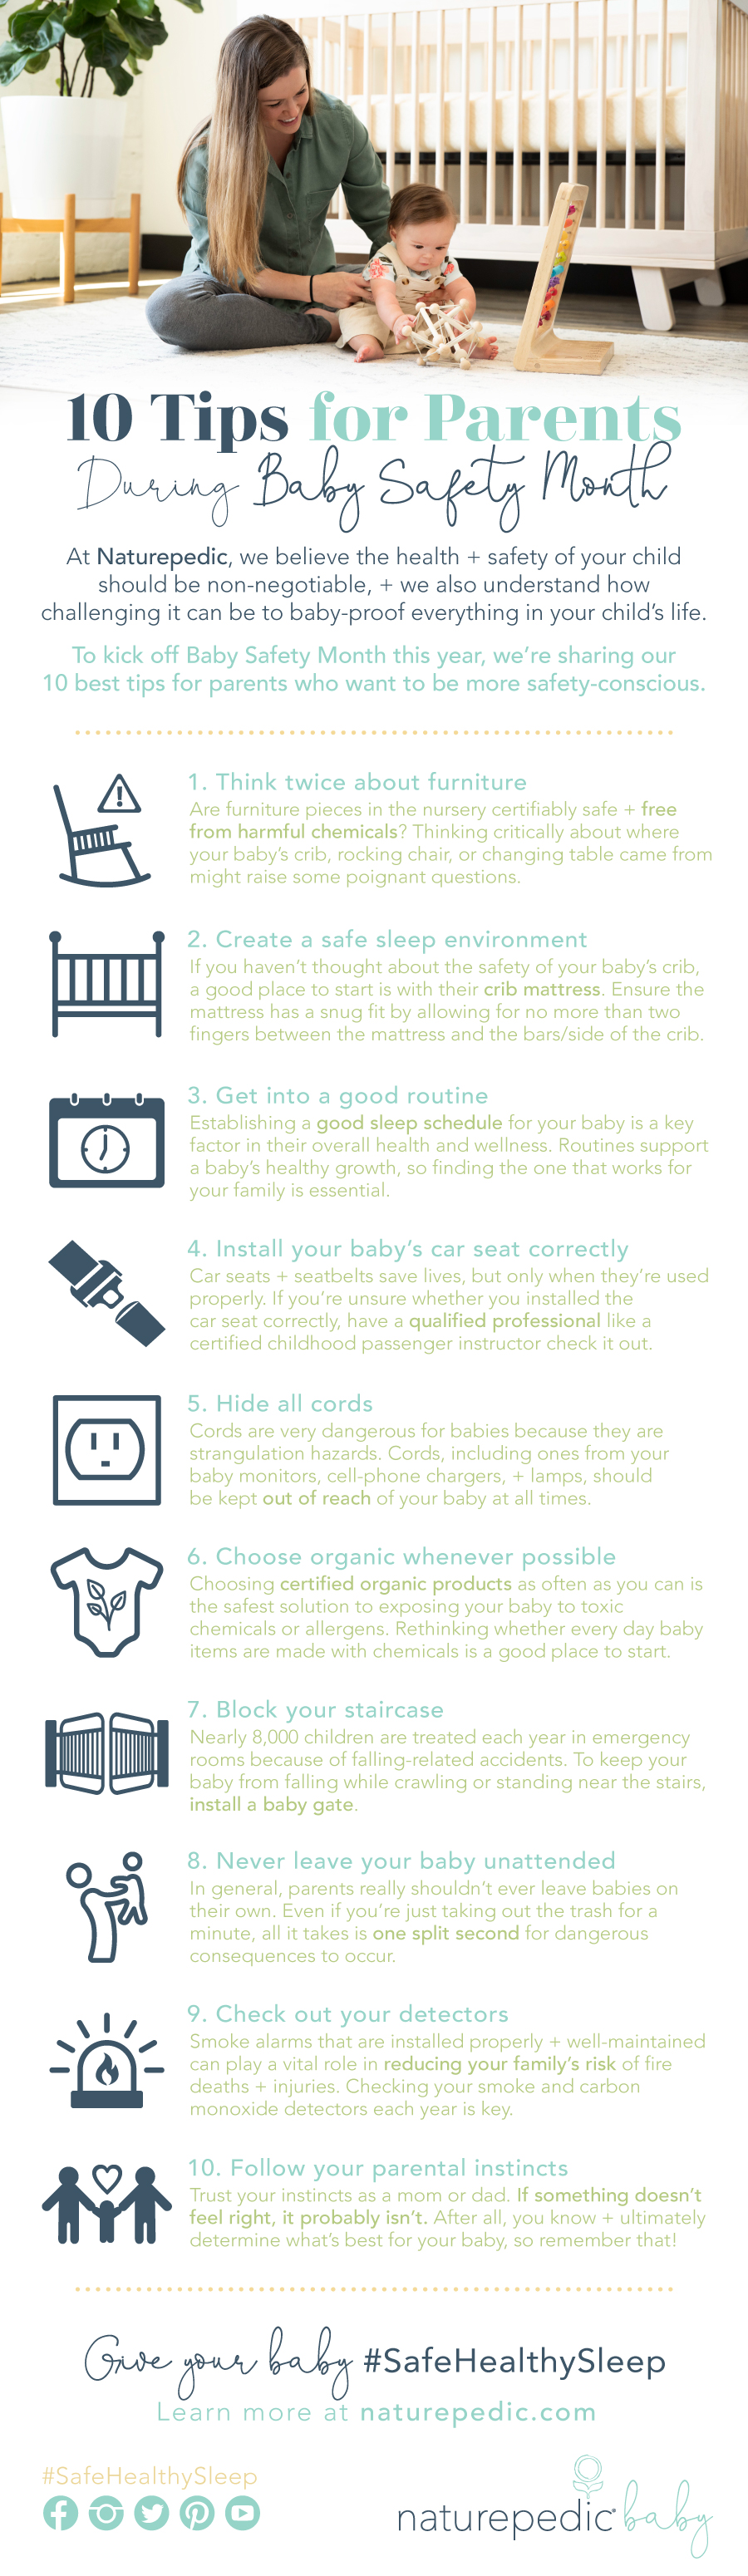 naturepedic infographic 10 tips for parents during baby safety month